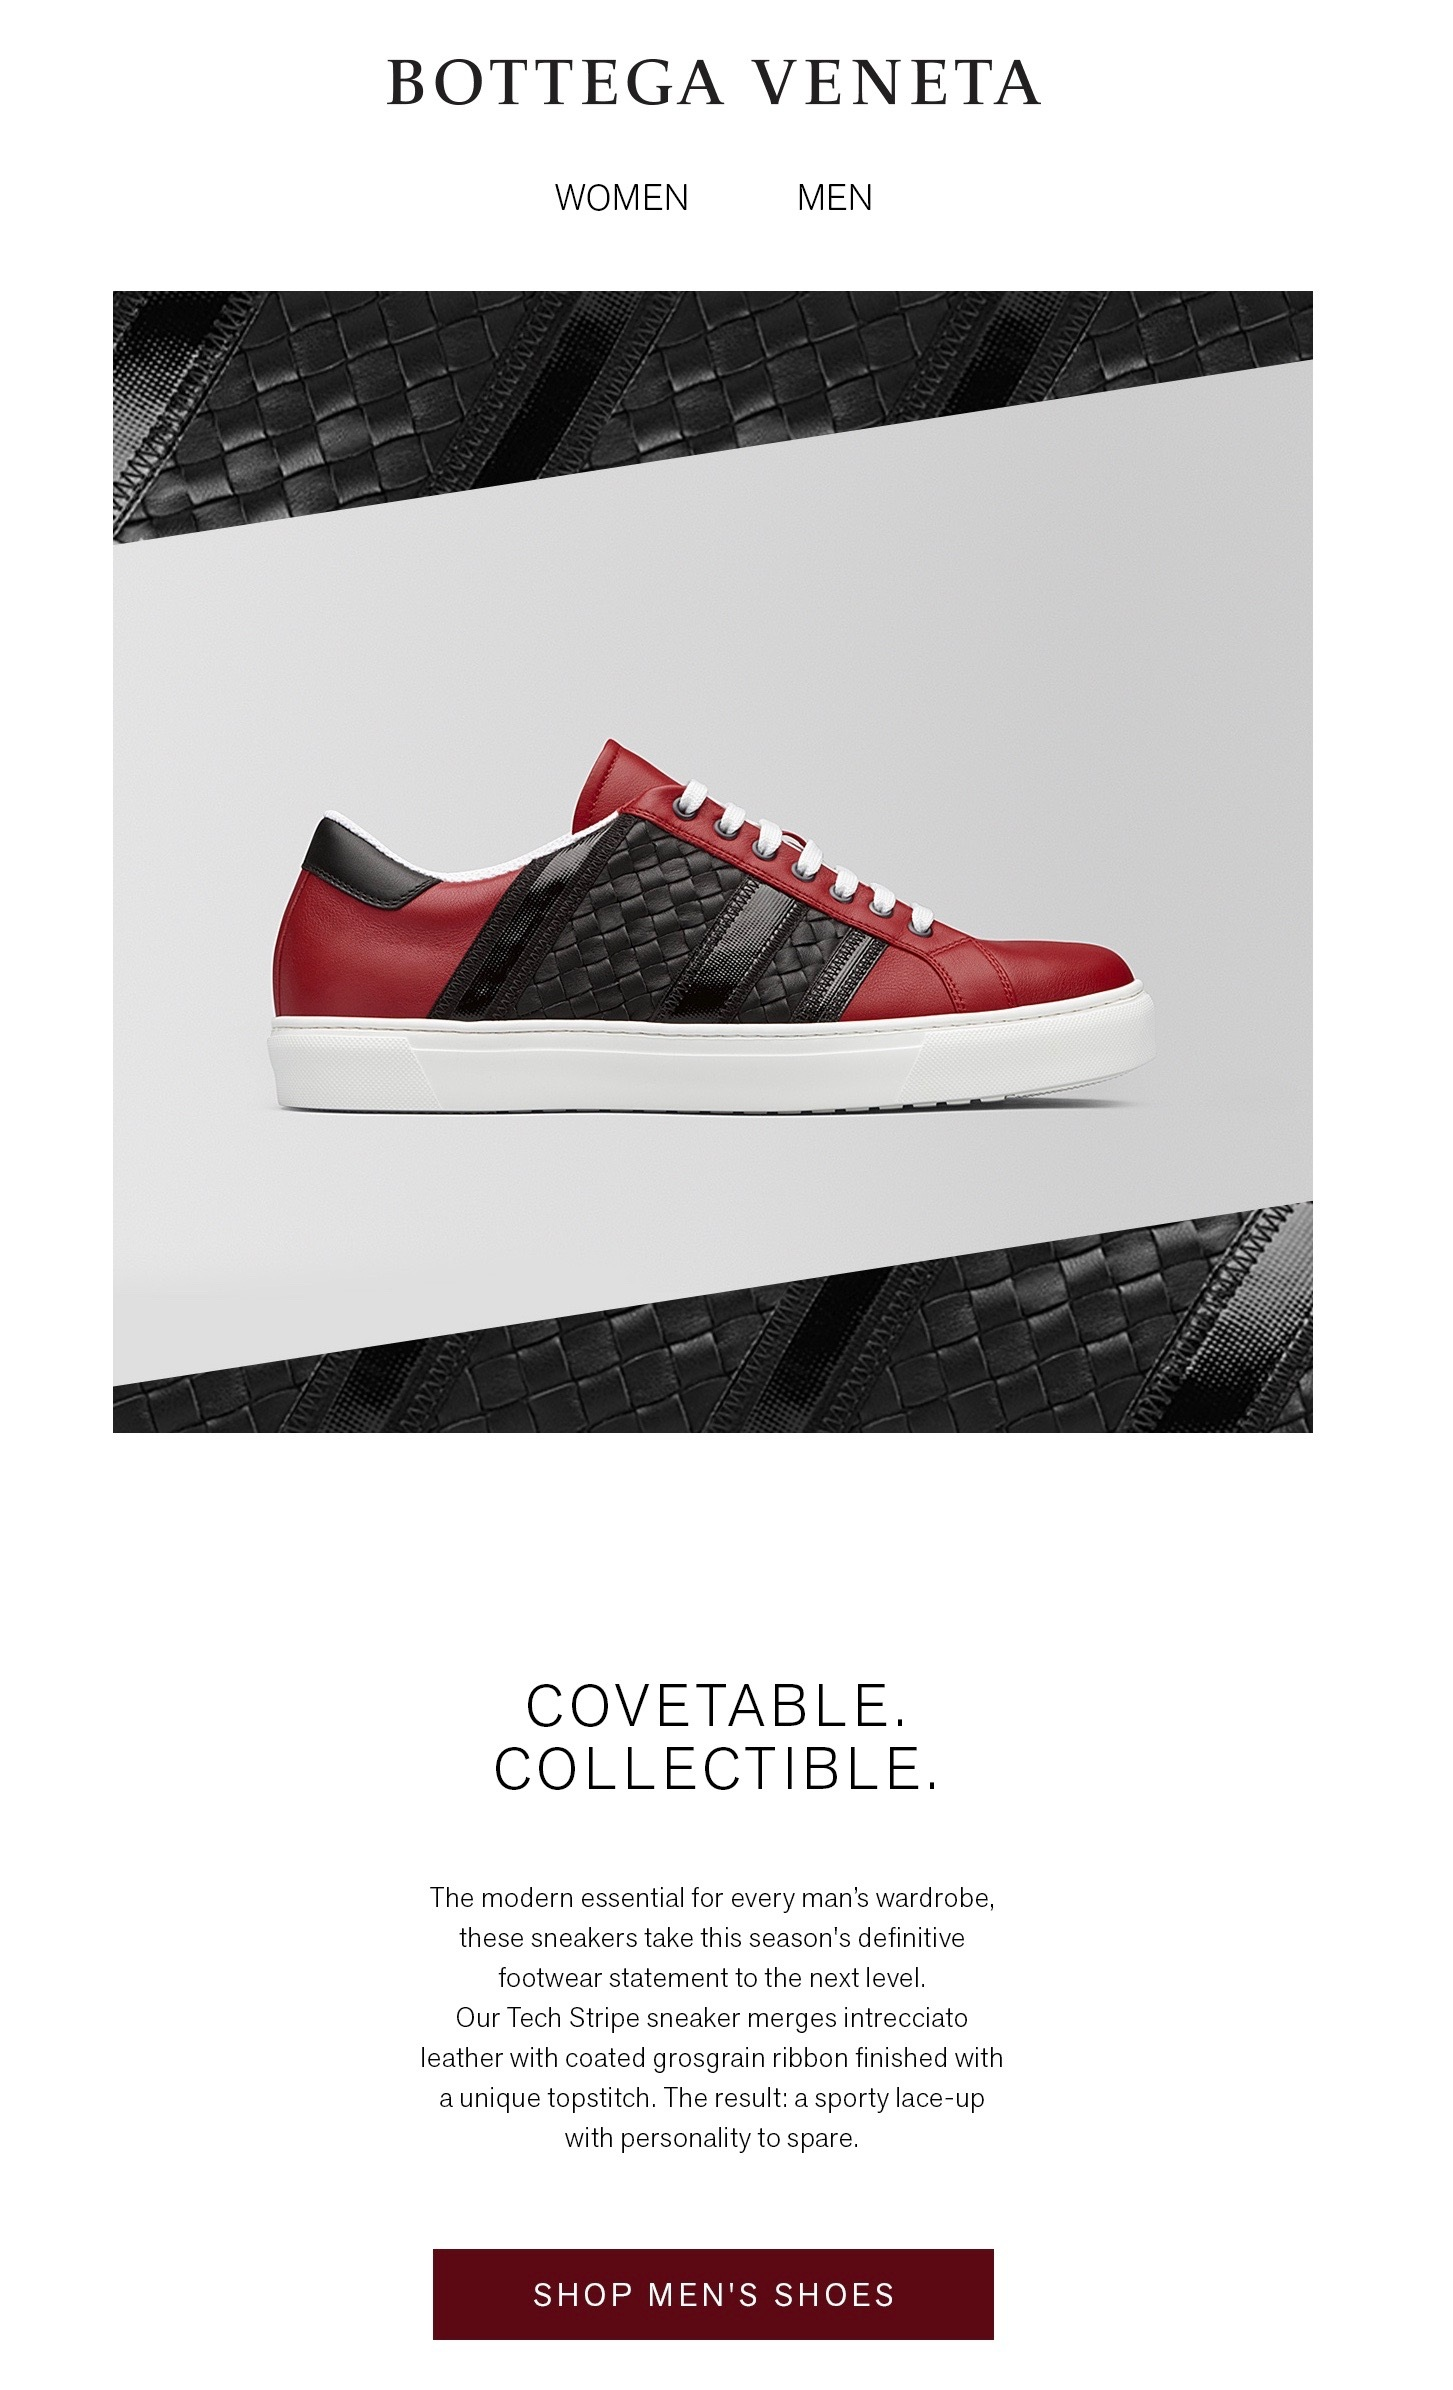 screencapture-milled-BottegaVeneta-the-newest-handcrafted-sneakers-UakztVlcZzPISMuZ-2019-04-21-23_12_31.jpg